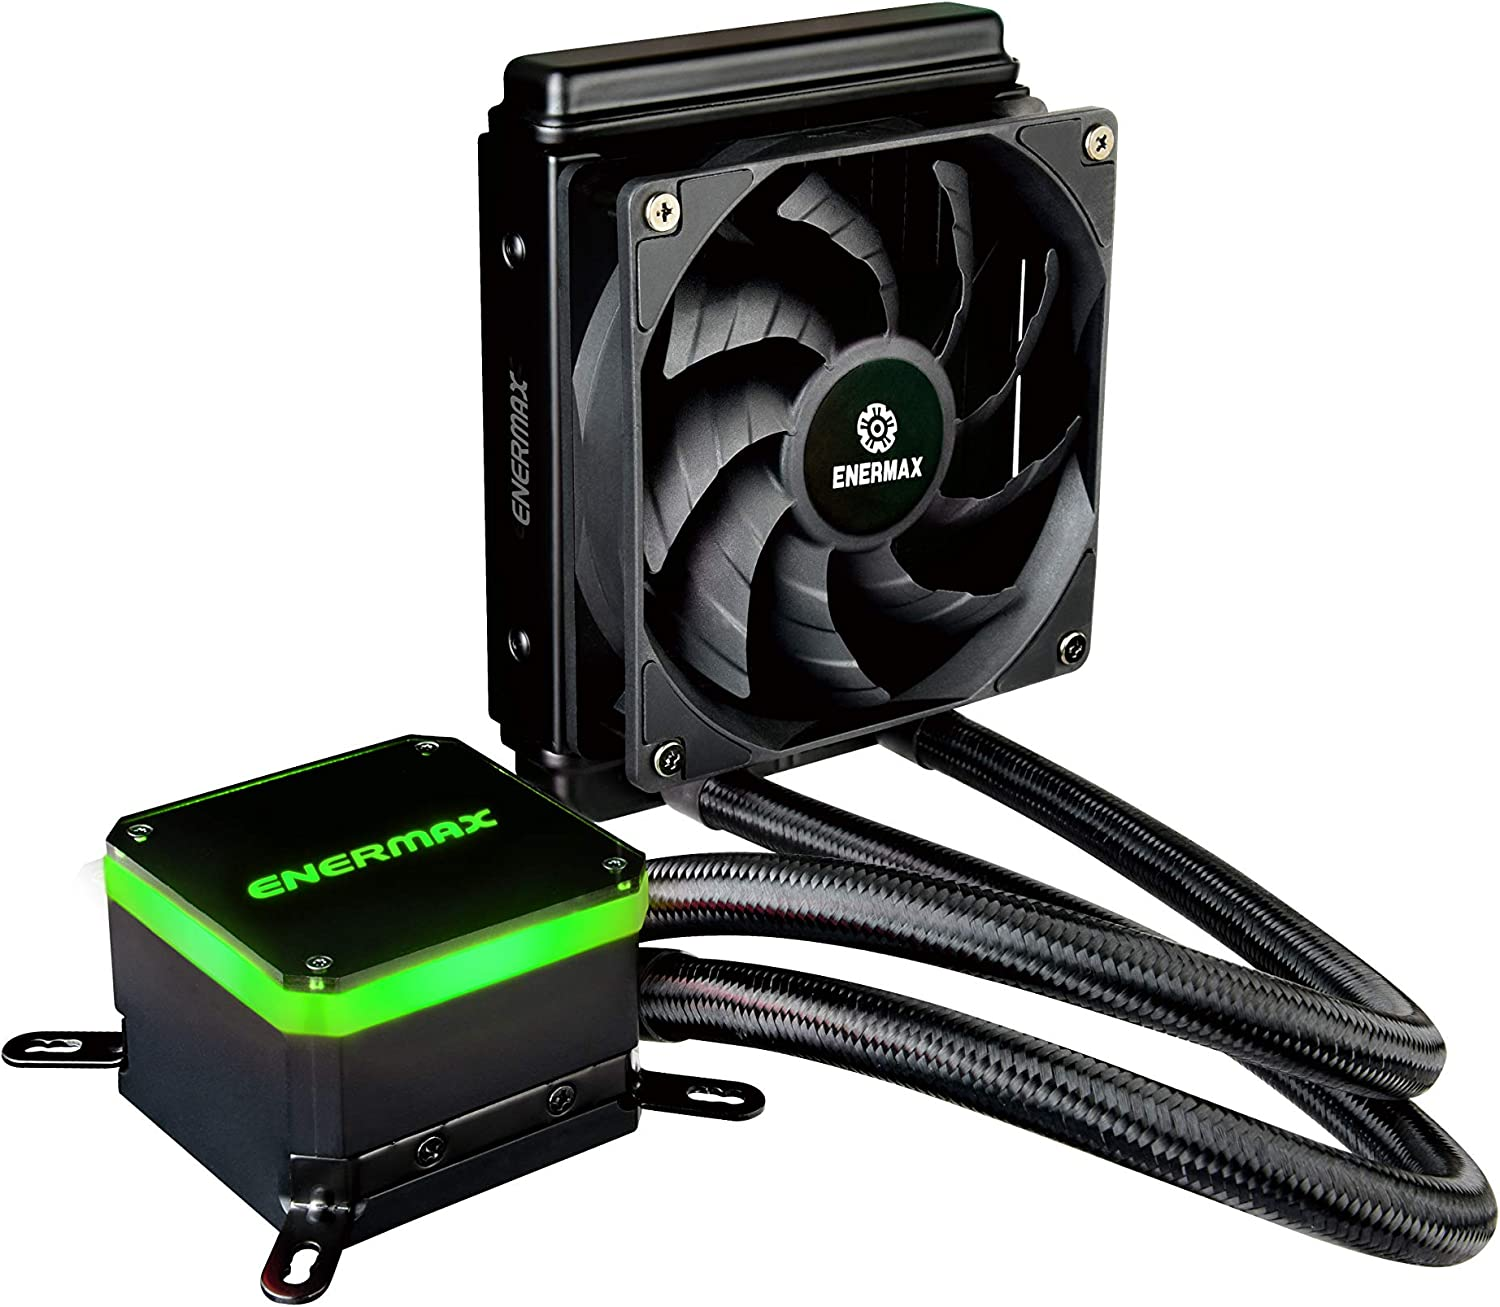 Enermax Liqmax III 120 All-in-One CPU Liquid Cooler Dual Chamber Intel/AMD AM4 Support AIO Cooling 300W+ TDP; 12V 4-Pin RGB Header; ELC-LMT120-HF